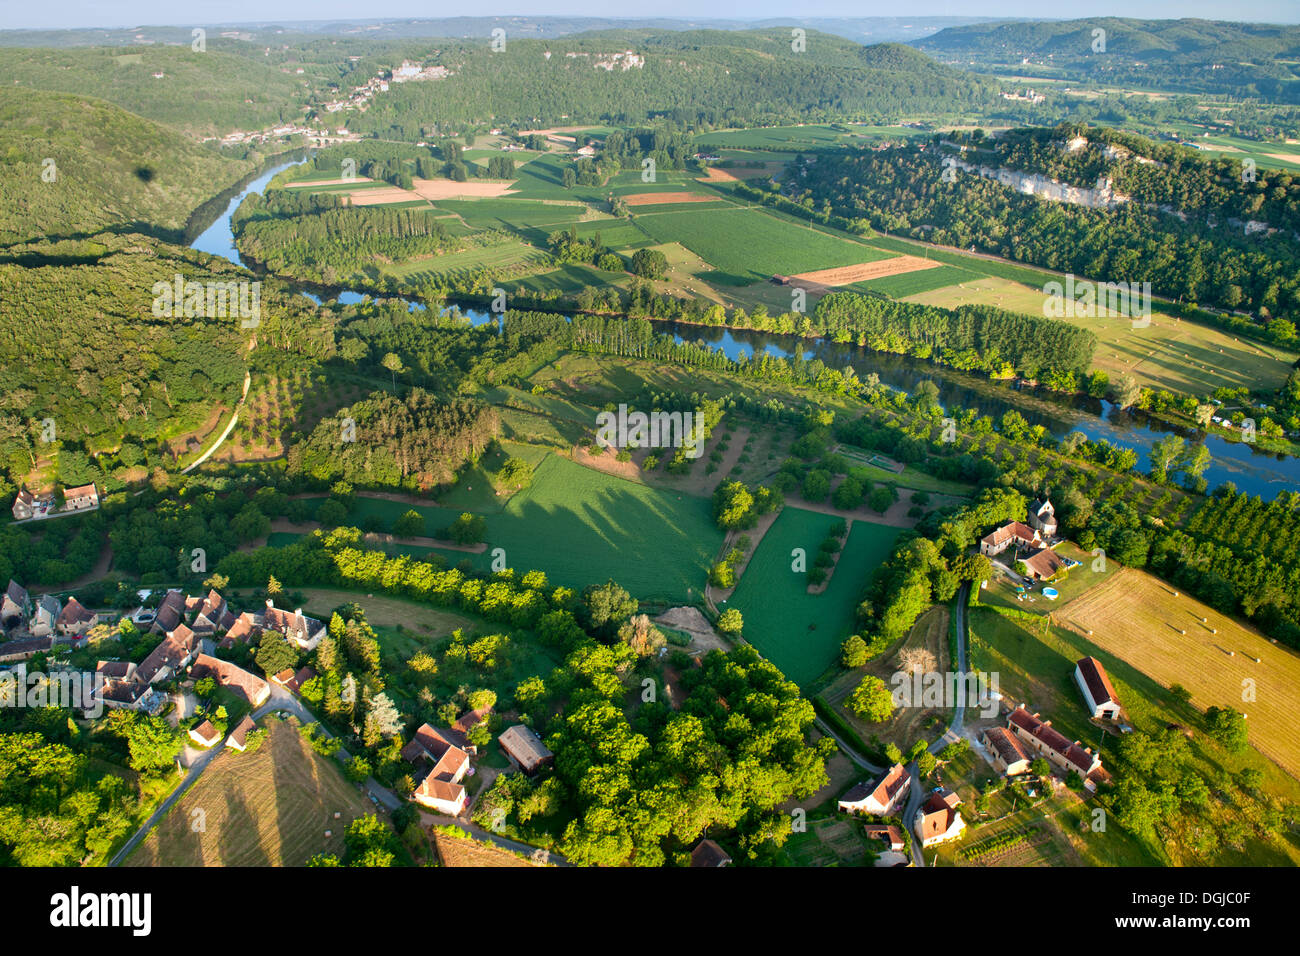 An aerial view over the Dordogne River and surrounding countryside. Stock Photo